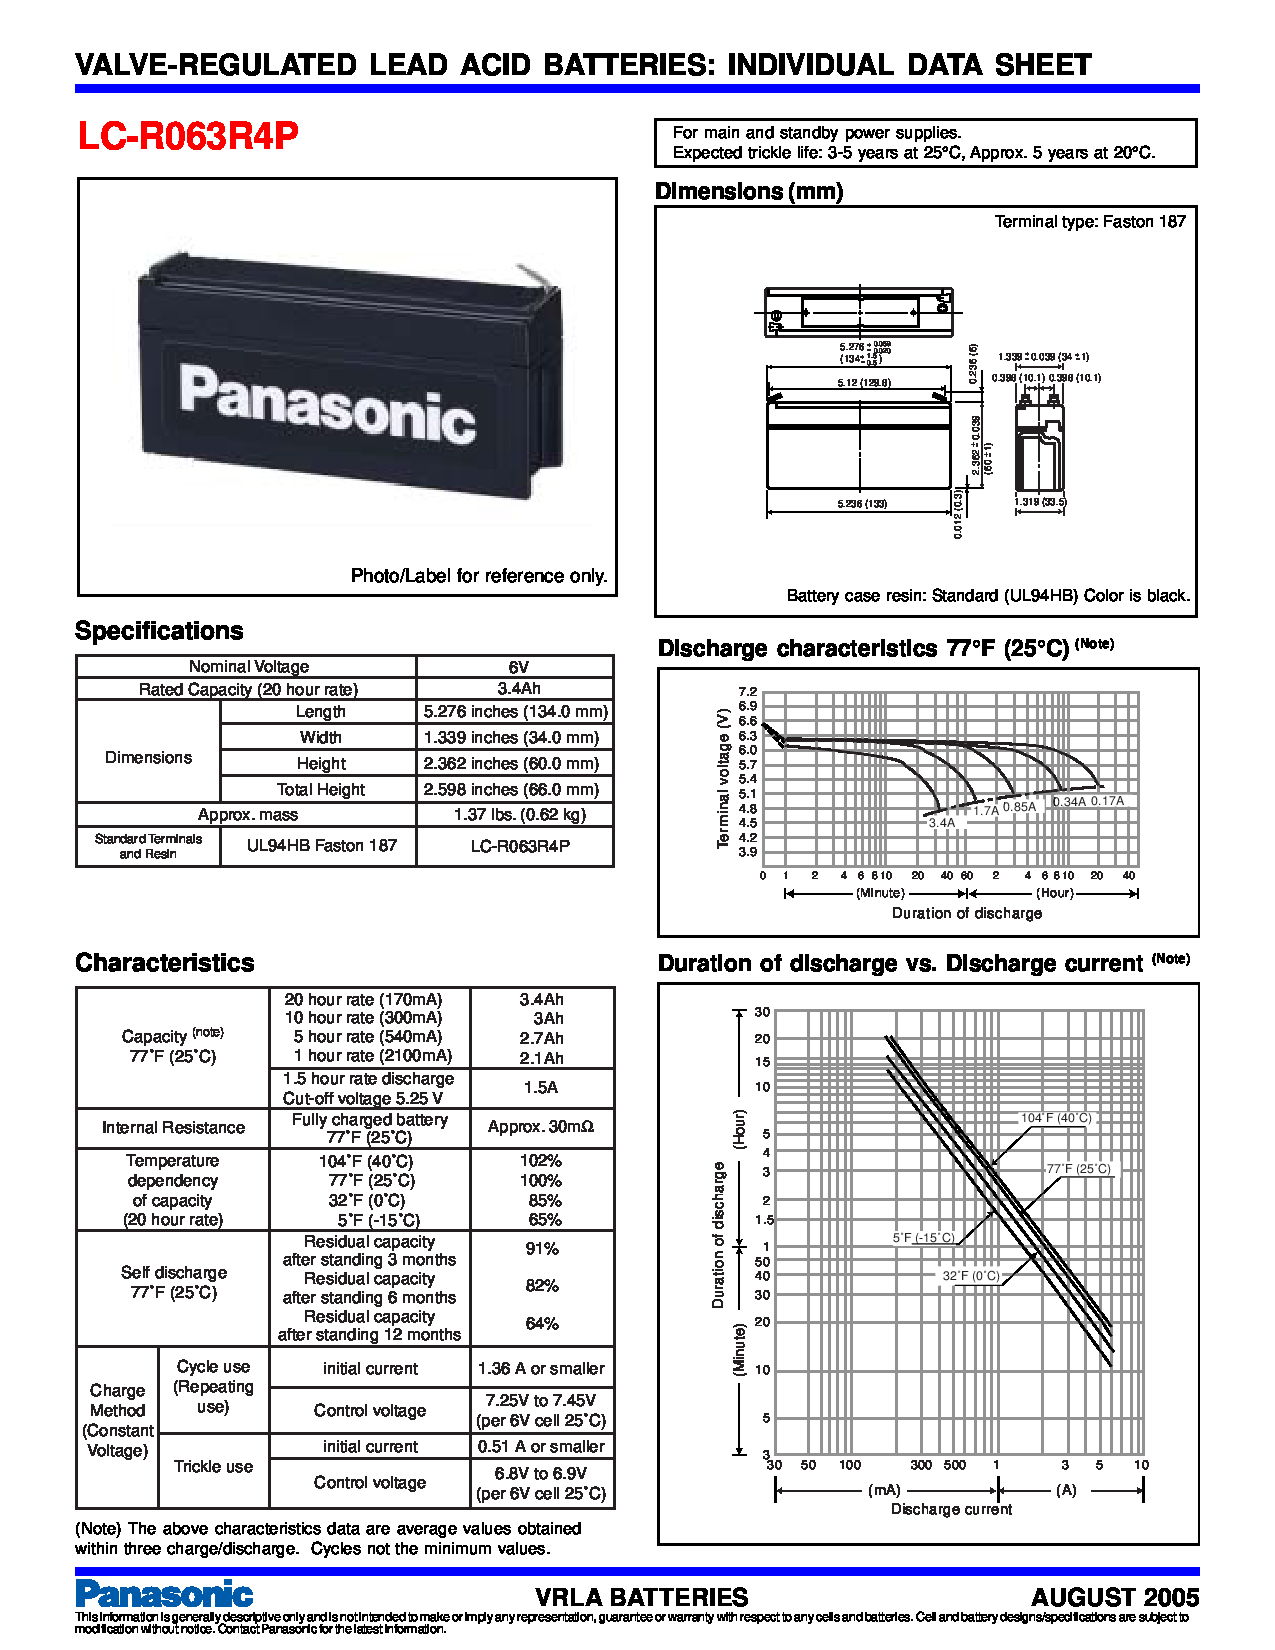 Panasonic LC-R063R4P Manual